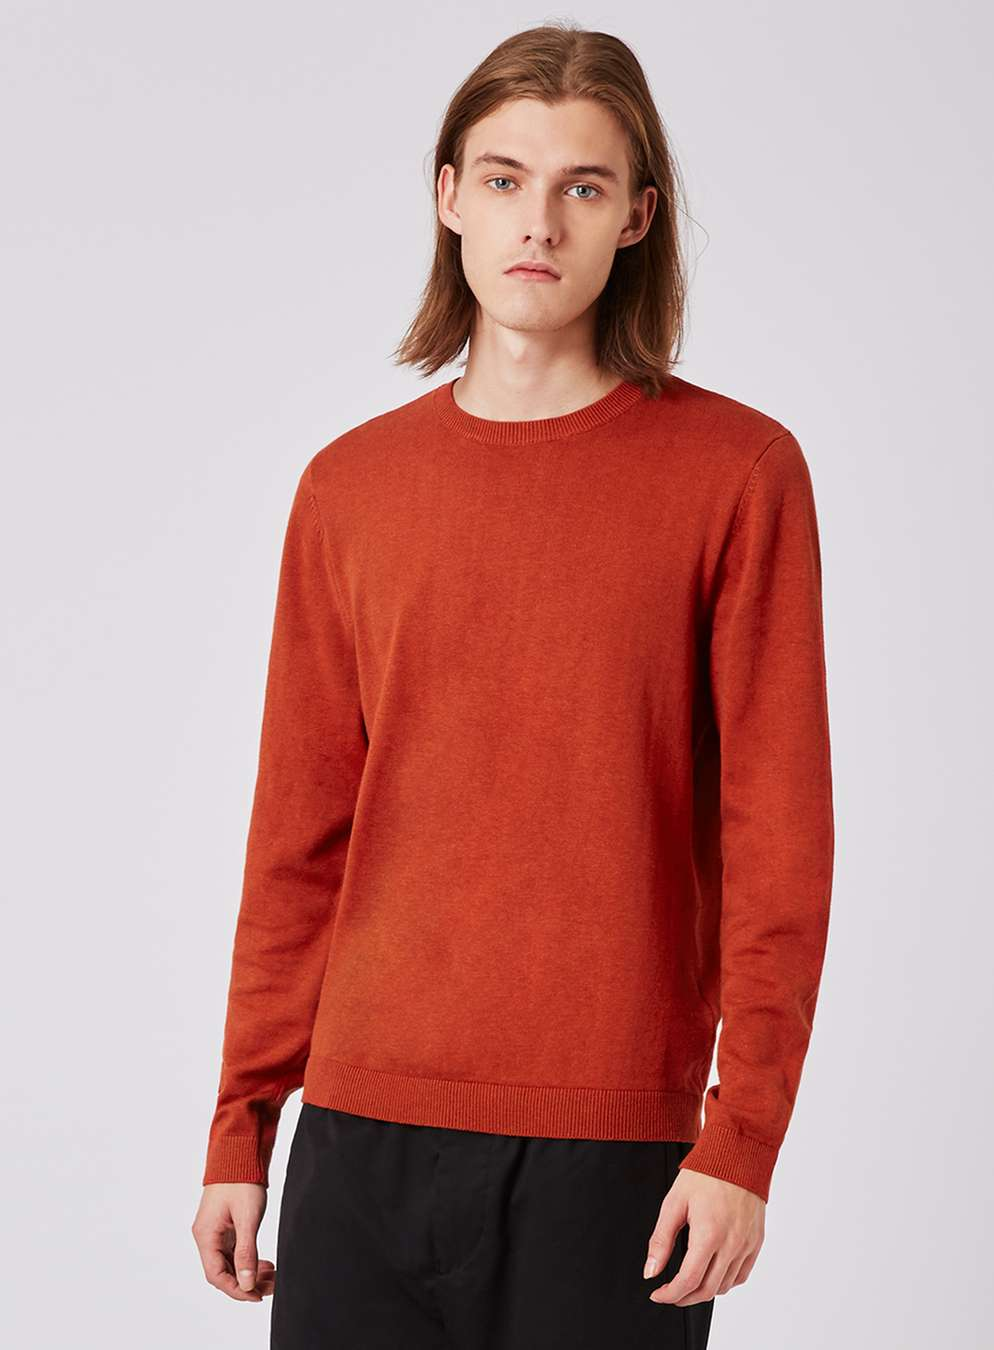 Topman Orange Slim Fit Crew Neck Jumper